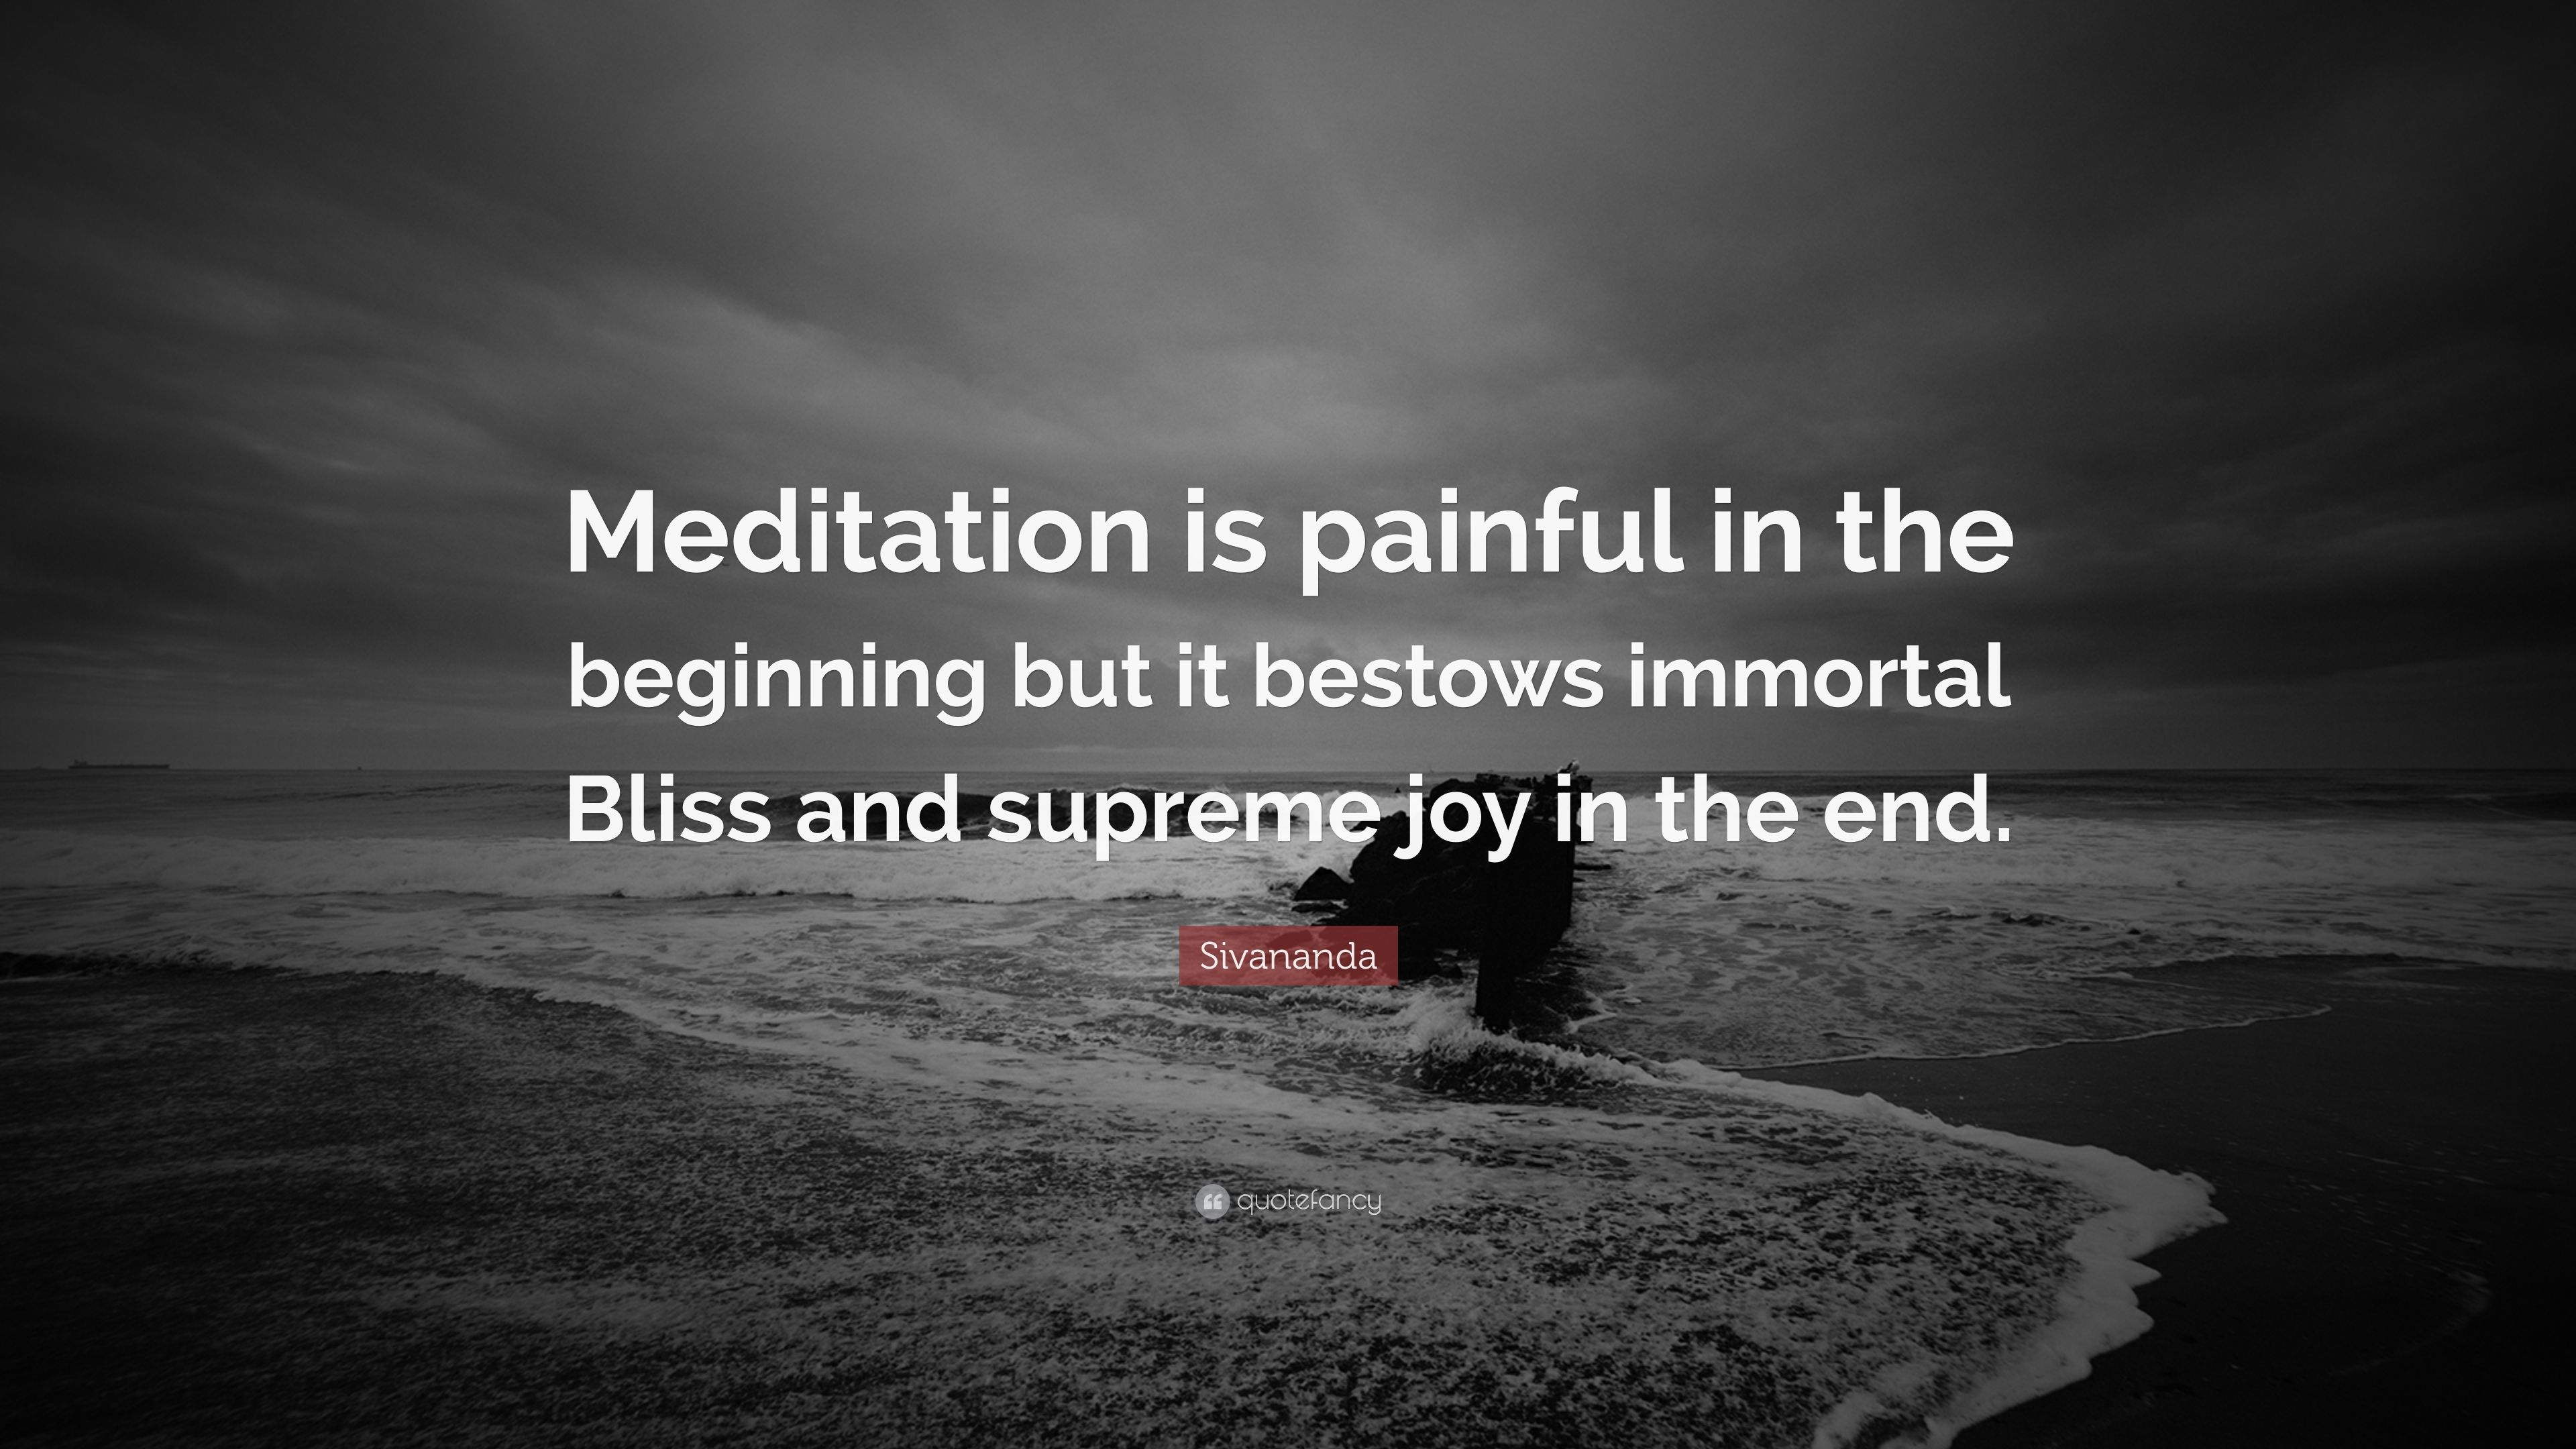 Meditation is painful in the beginning quote